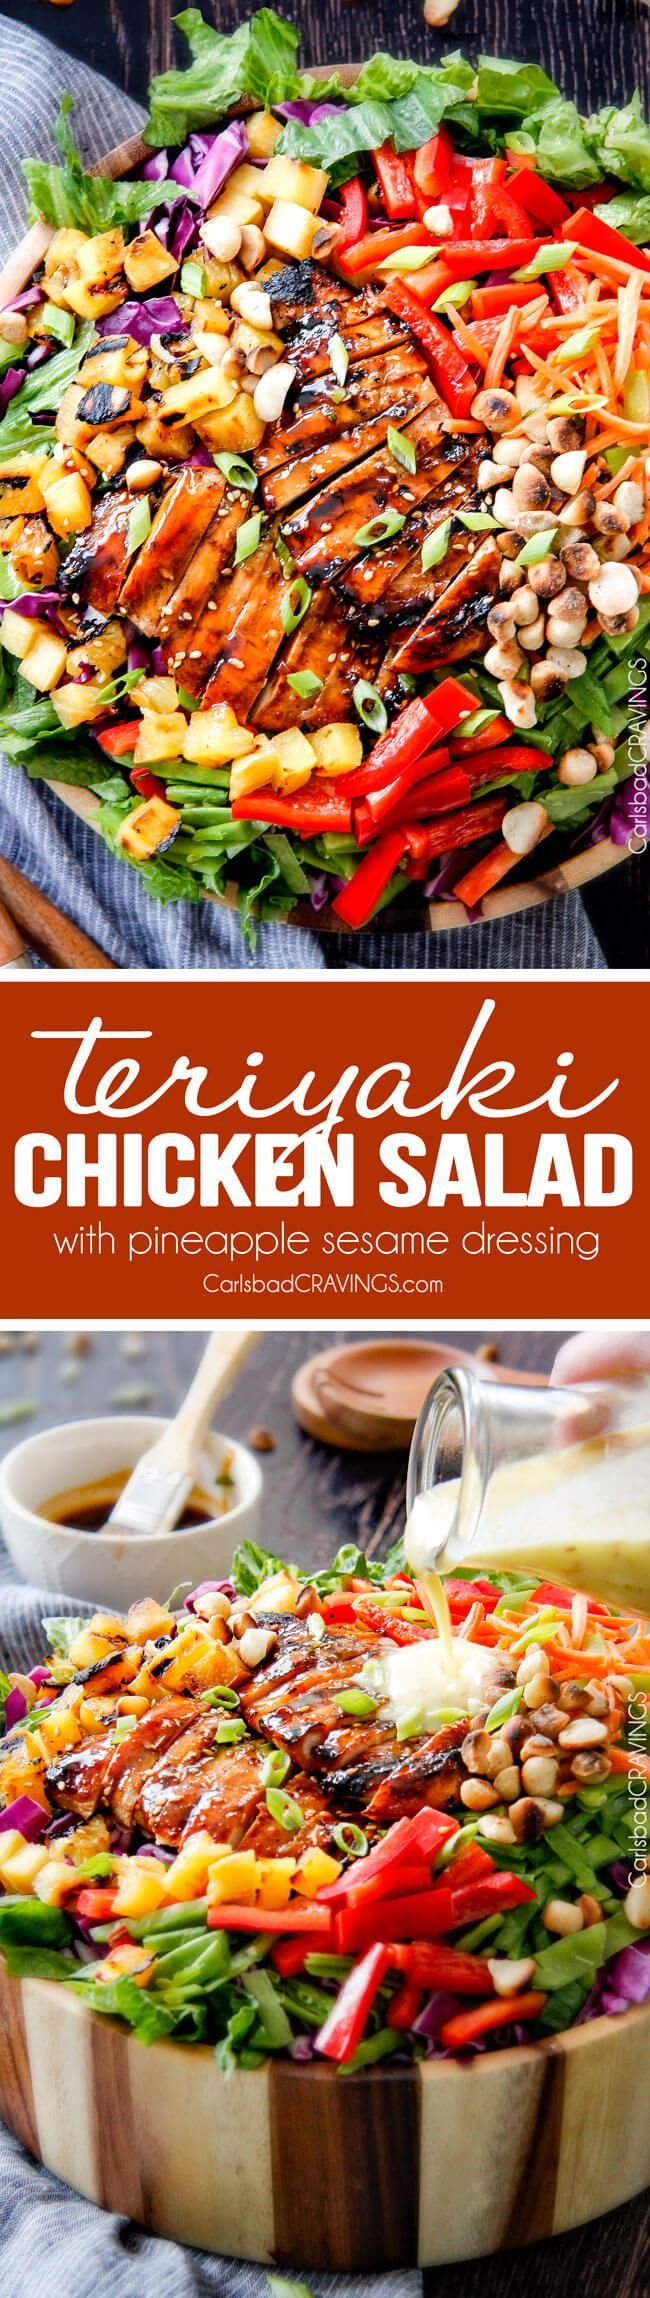 Treat yourself to some snacks! http://amzn.to/2oEqnkm Teriyaki Chicken Salad - This salad is to live for! Packed with refreshing pineapple, macadamia nuts and coconut all doused with the most AMAZING Pineapple Sesame Dressing and the Sweet Chili Teriyaki Chicken is incredible! But my favorite part is you drizzle the leftover Teriyaki glaze all over the salad! Definitely a keeper! via @carlsbadcraving